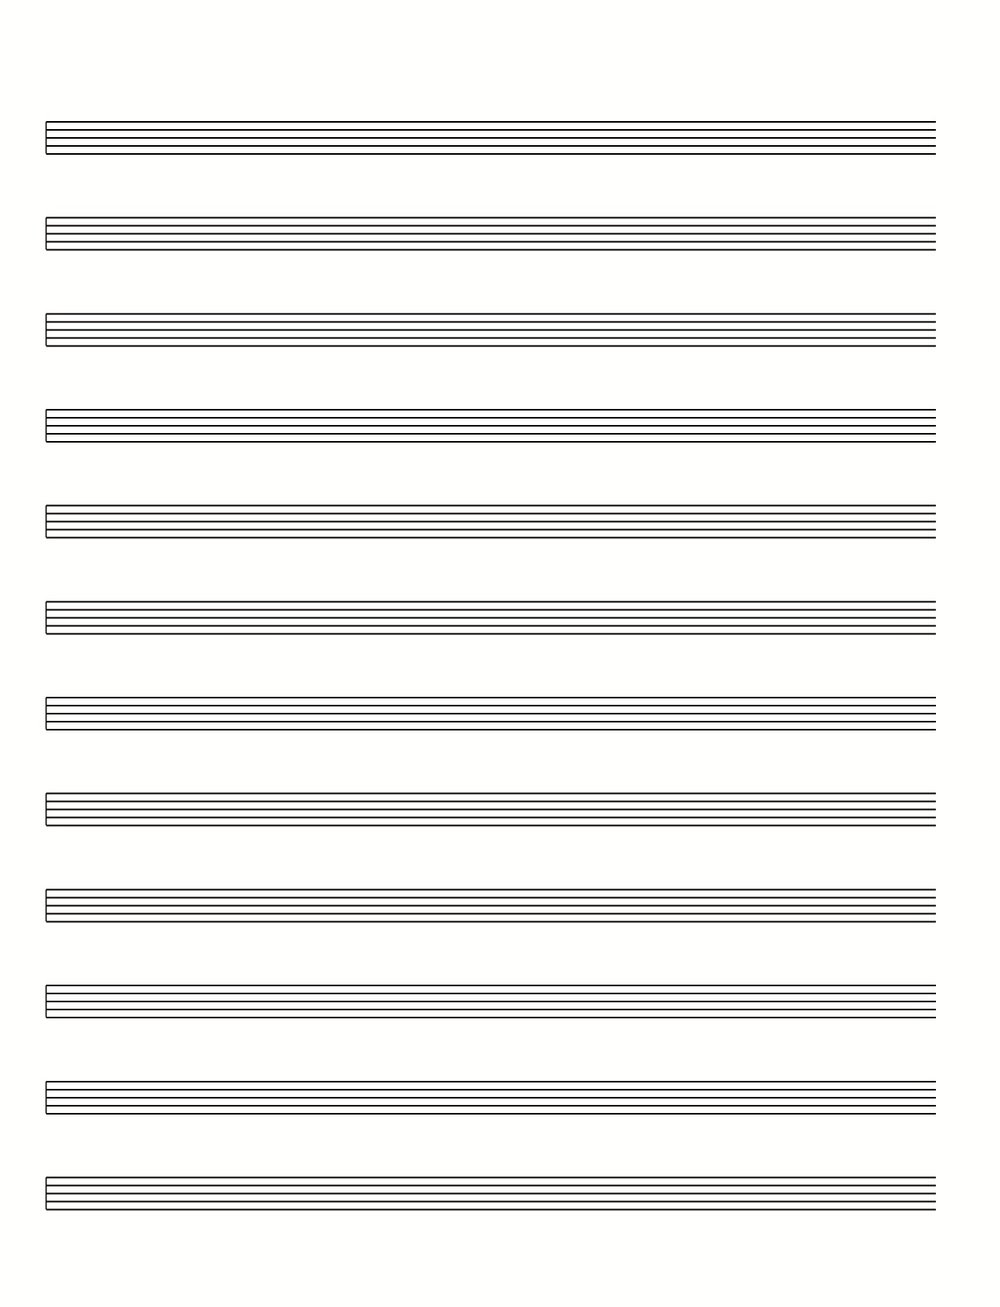 Score Tablature Free Template Download Pdf Mando Montréal